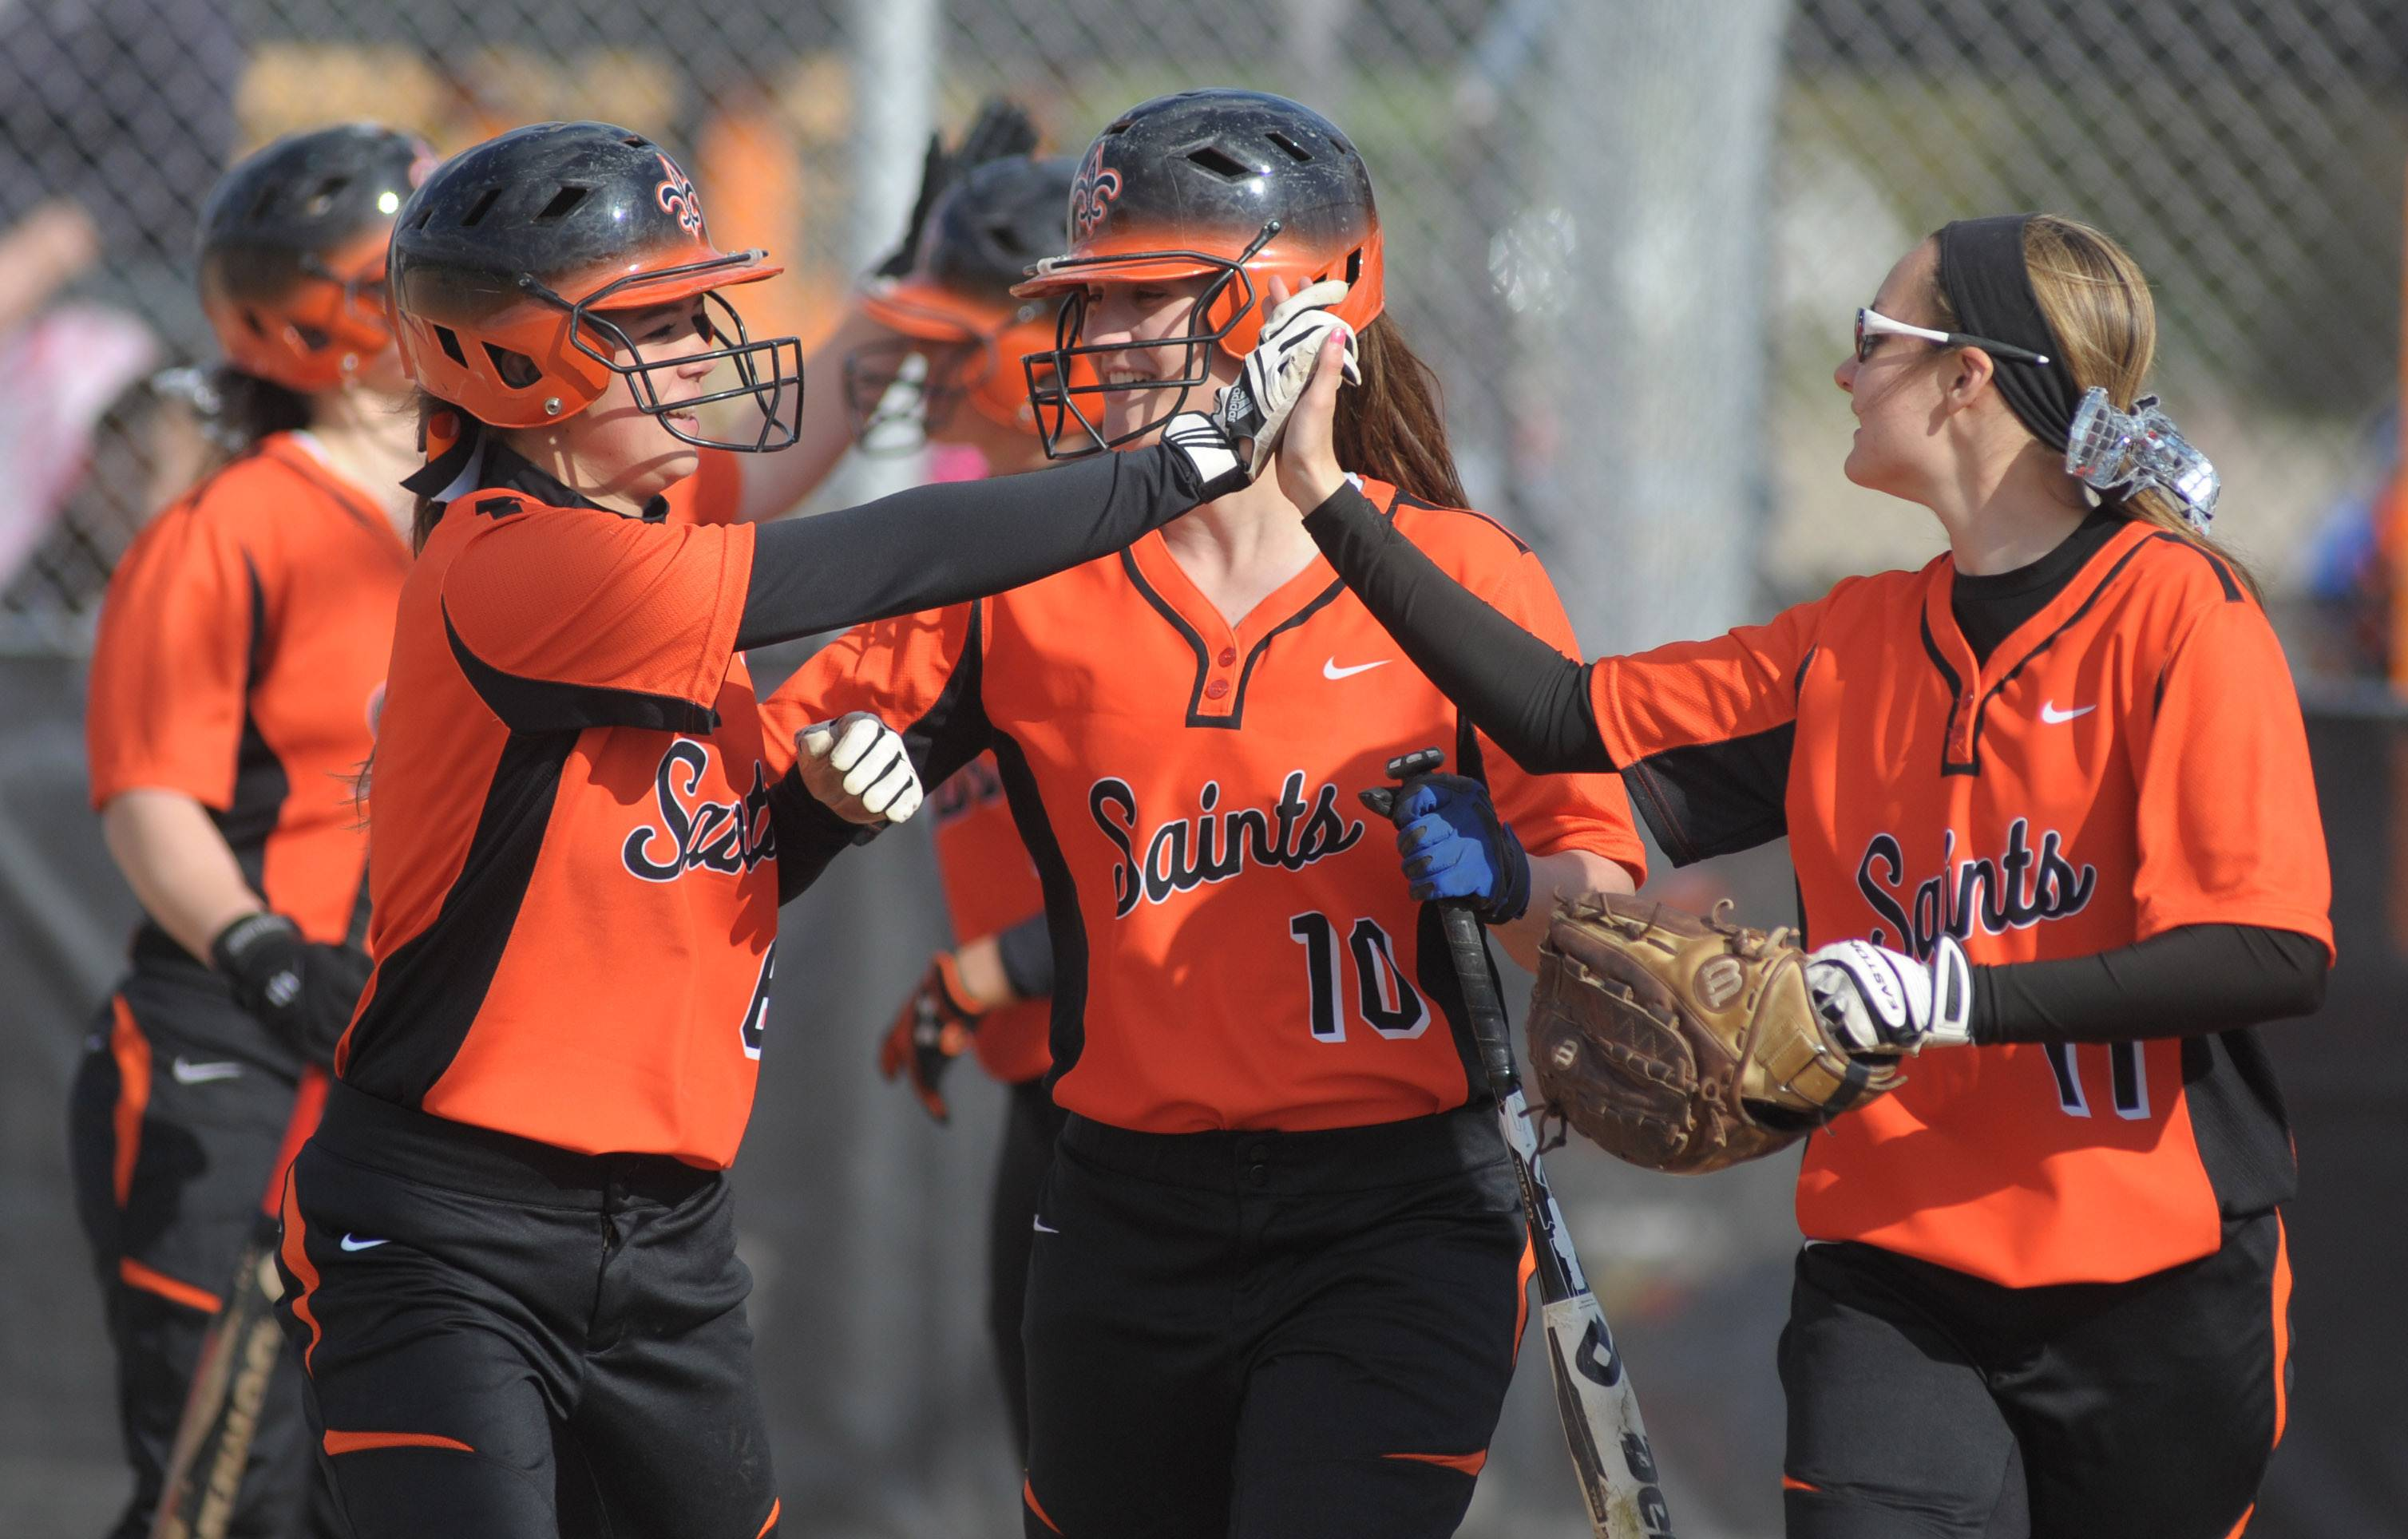 St. Charles East's Olivia Cheatham, left, Kate Peterburs, center, and Tess Hupe celebrate after Peterburs' home run in the first inning vs. Lyons on Friday, April 25.